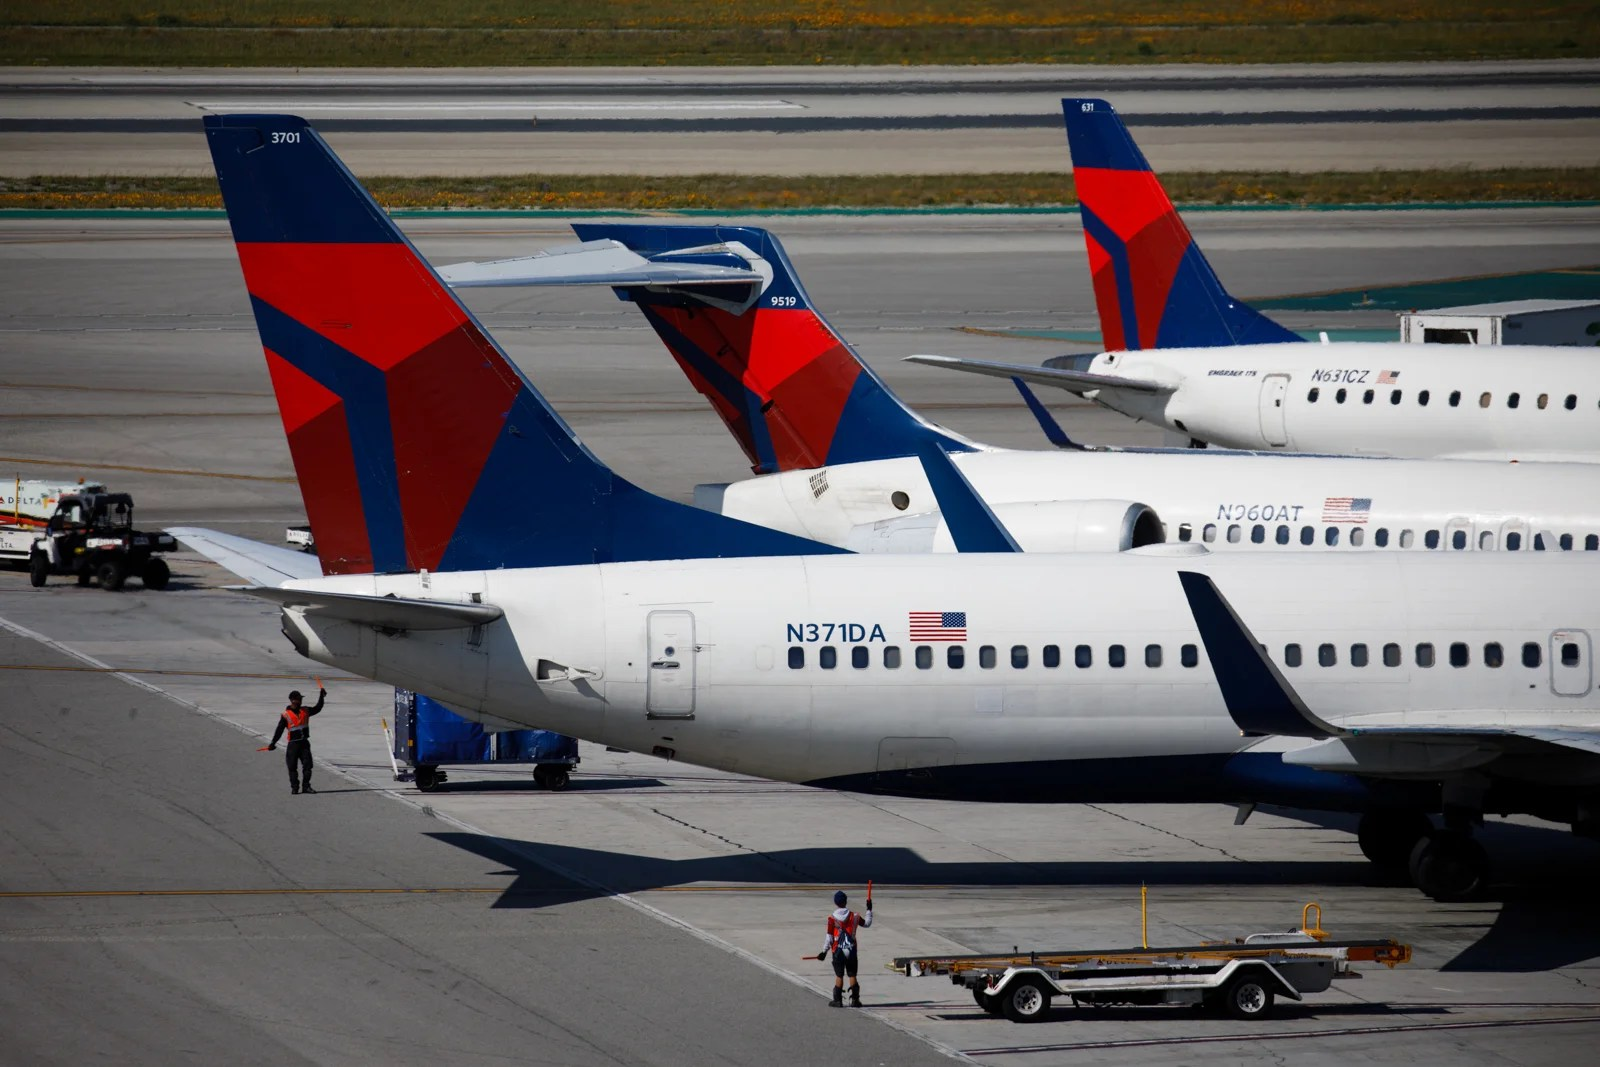 Delta Air Lines Is Allowing Changes to Dominican Republic Flights After Tourists' Deaths